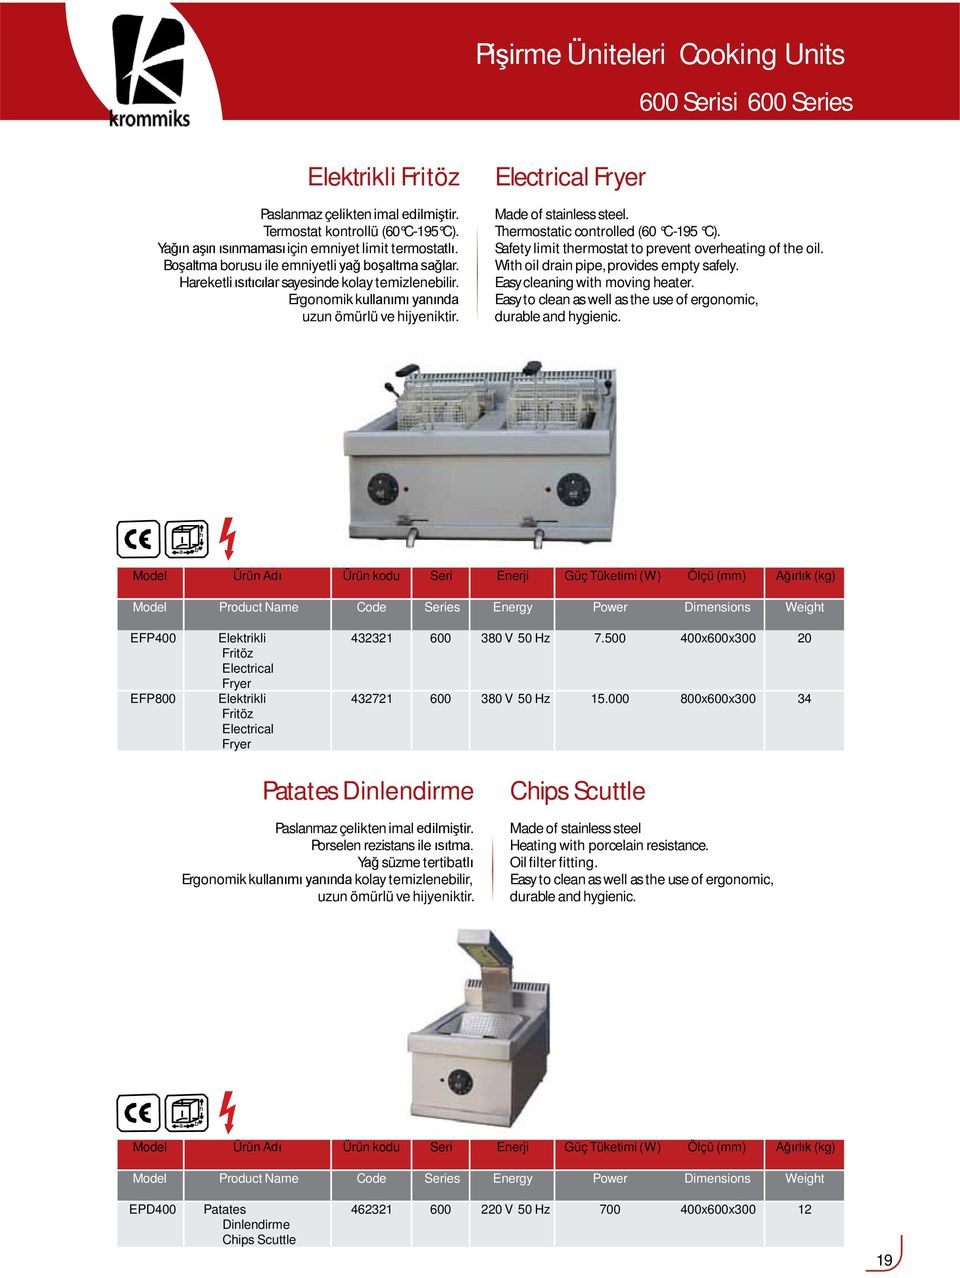 Electrical Fryer Thermostatic controlled (60 C-195 C). Safety limit thermostat to prevent overheating of the oil. Withoil drain pipe, provides empty safely. Easycleaning with moving heater.